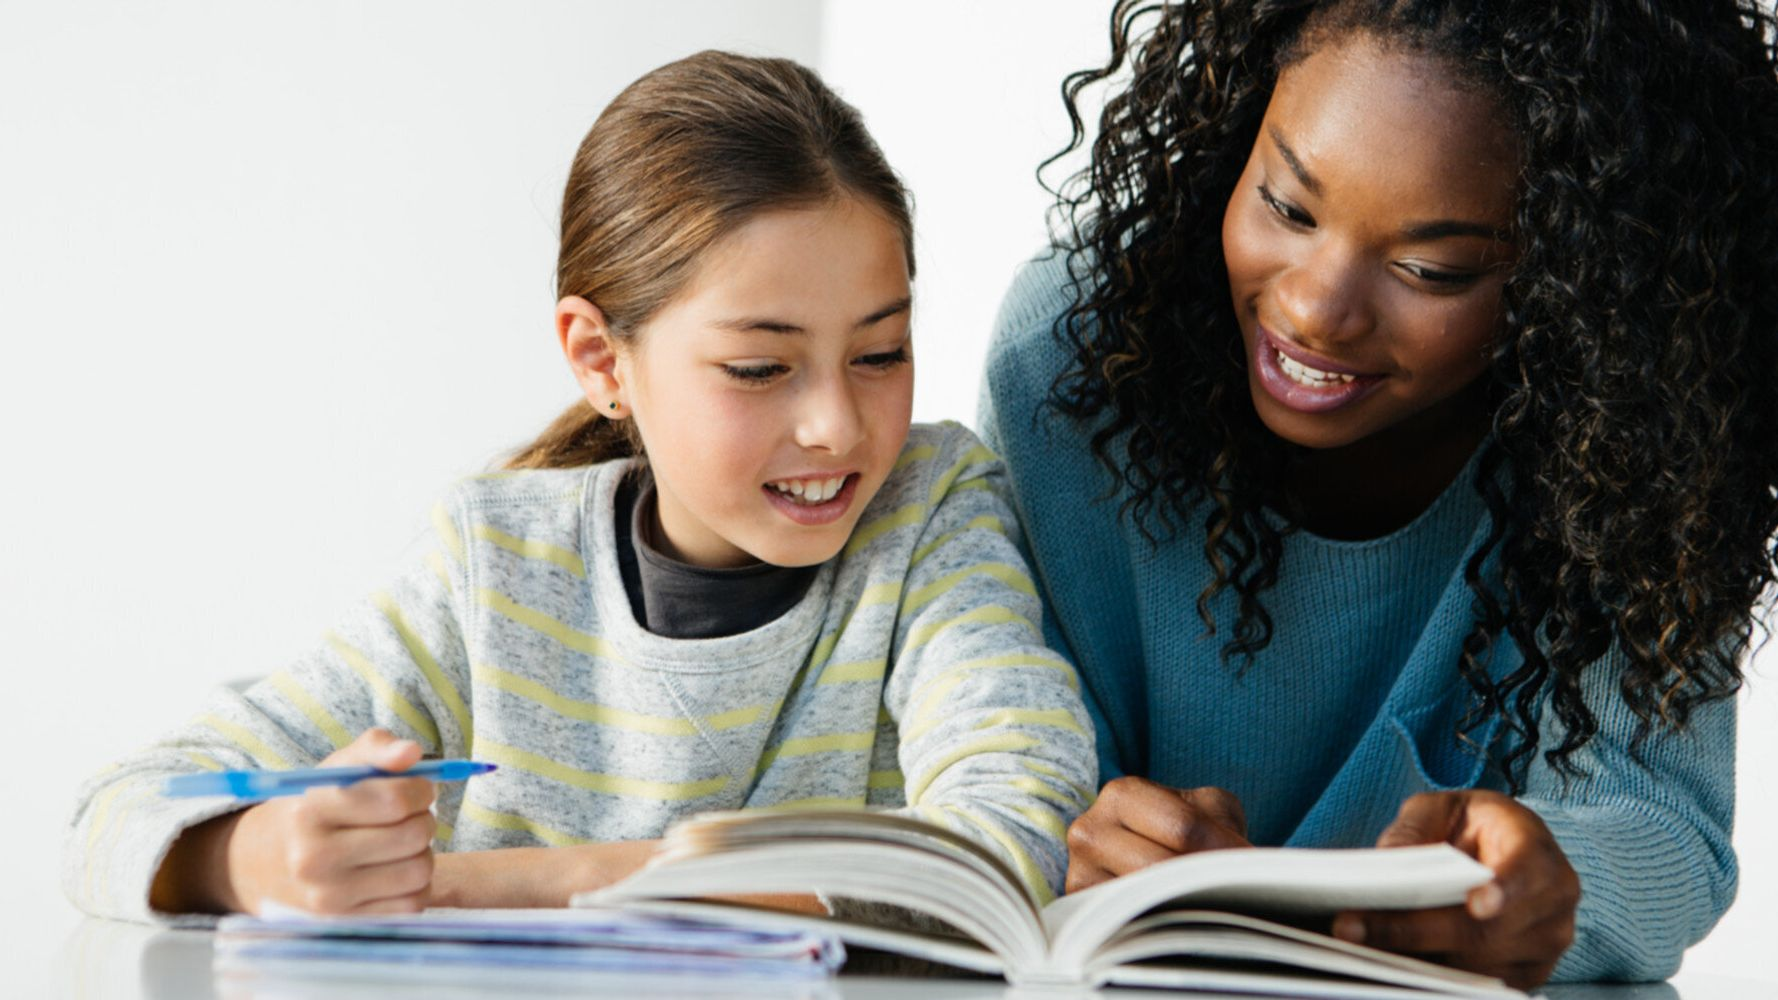 Is It Ever A Good Idea To DIY When It Comes To Your Child's Tutoring?